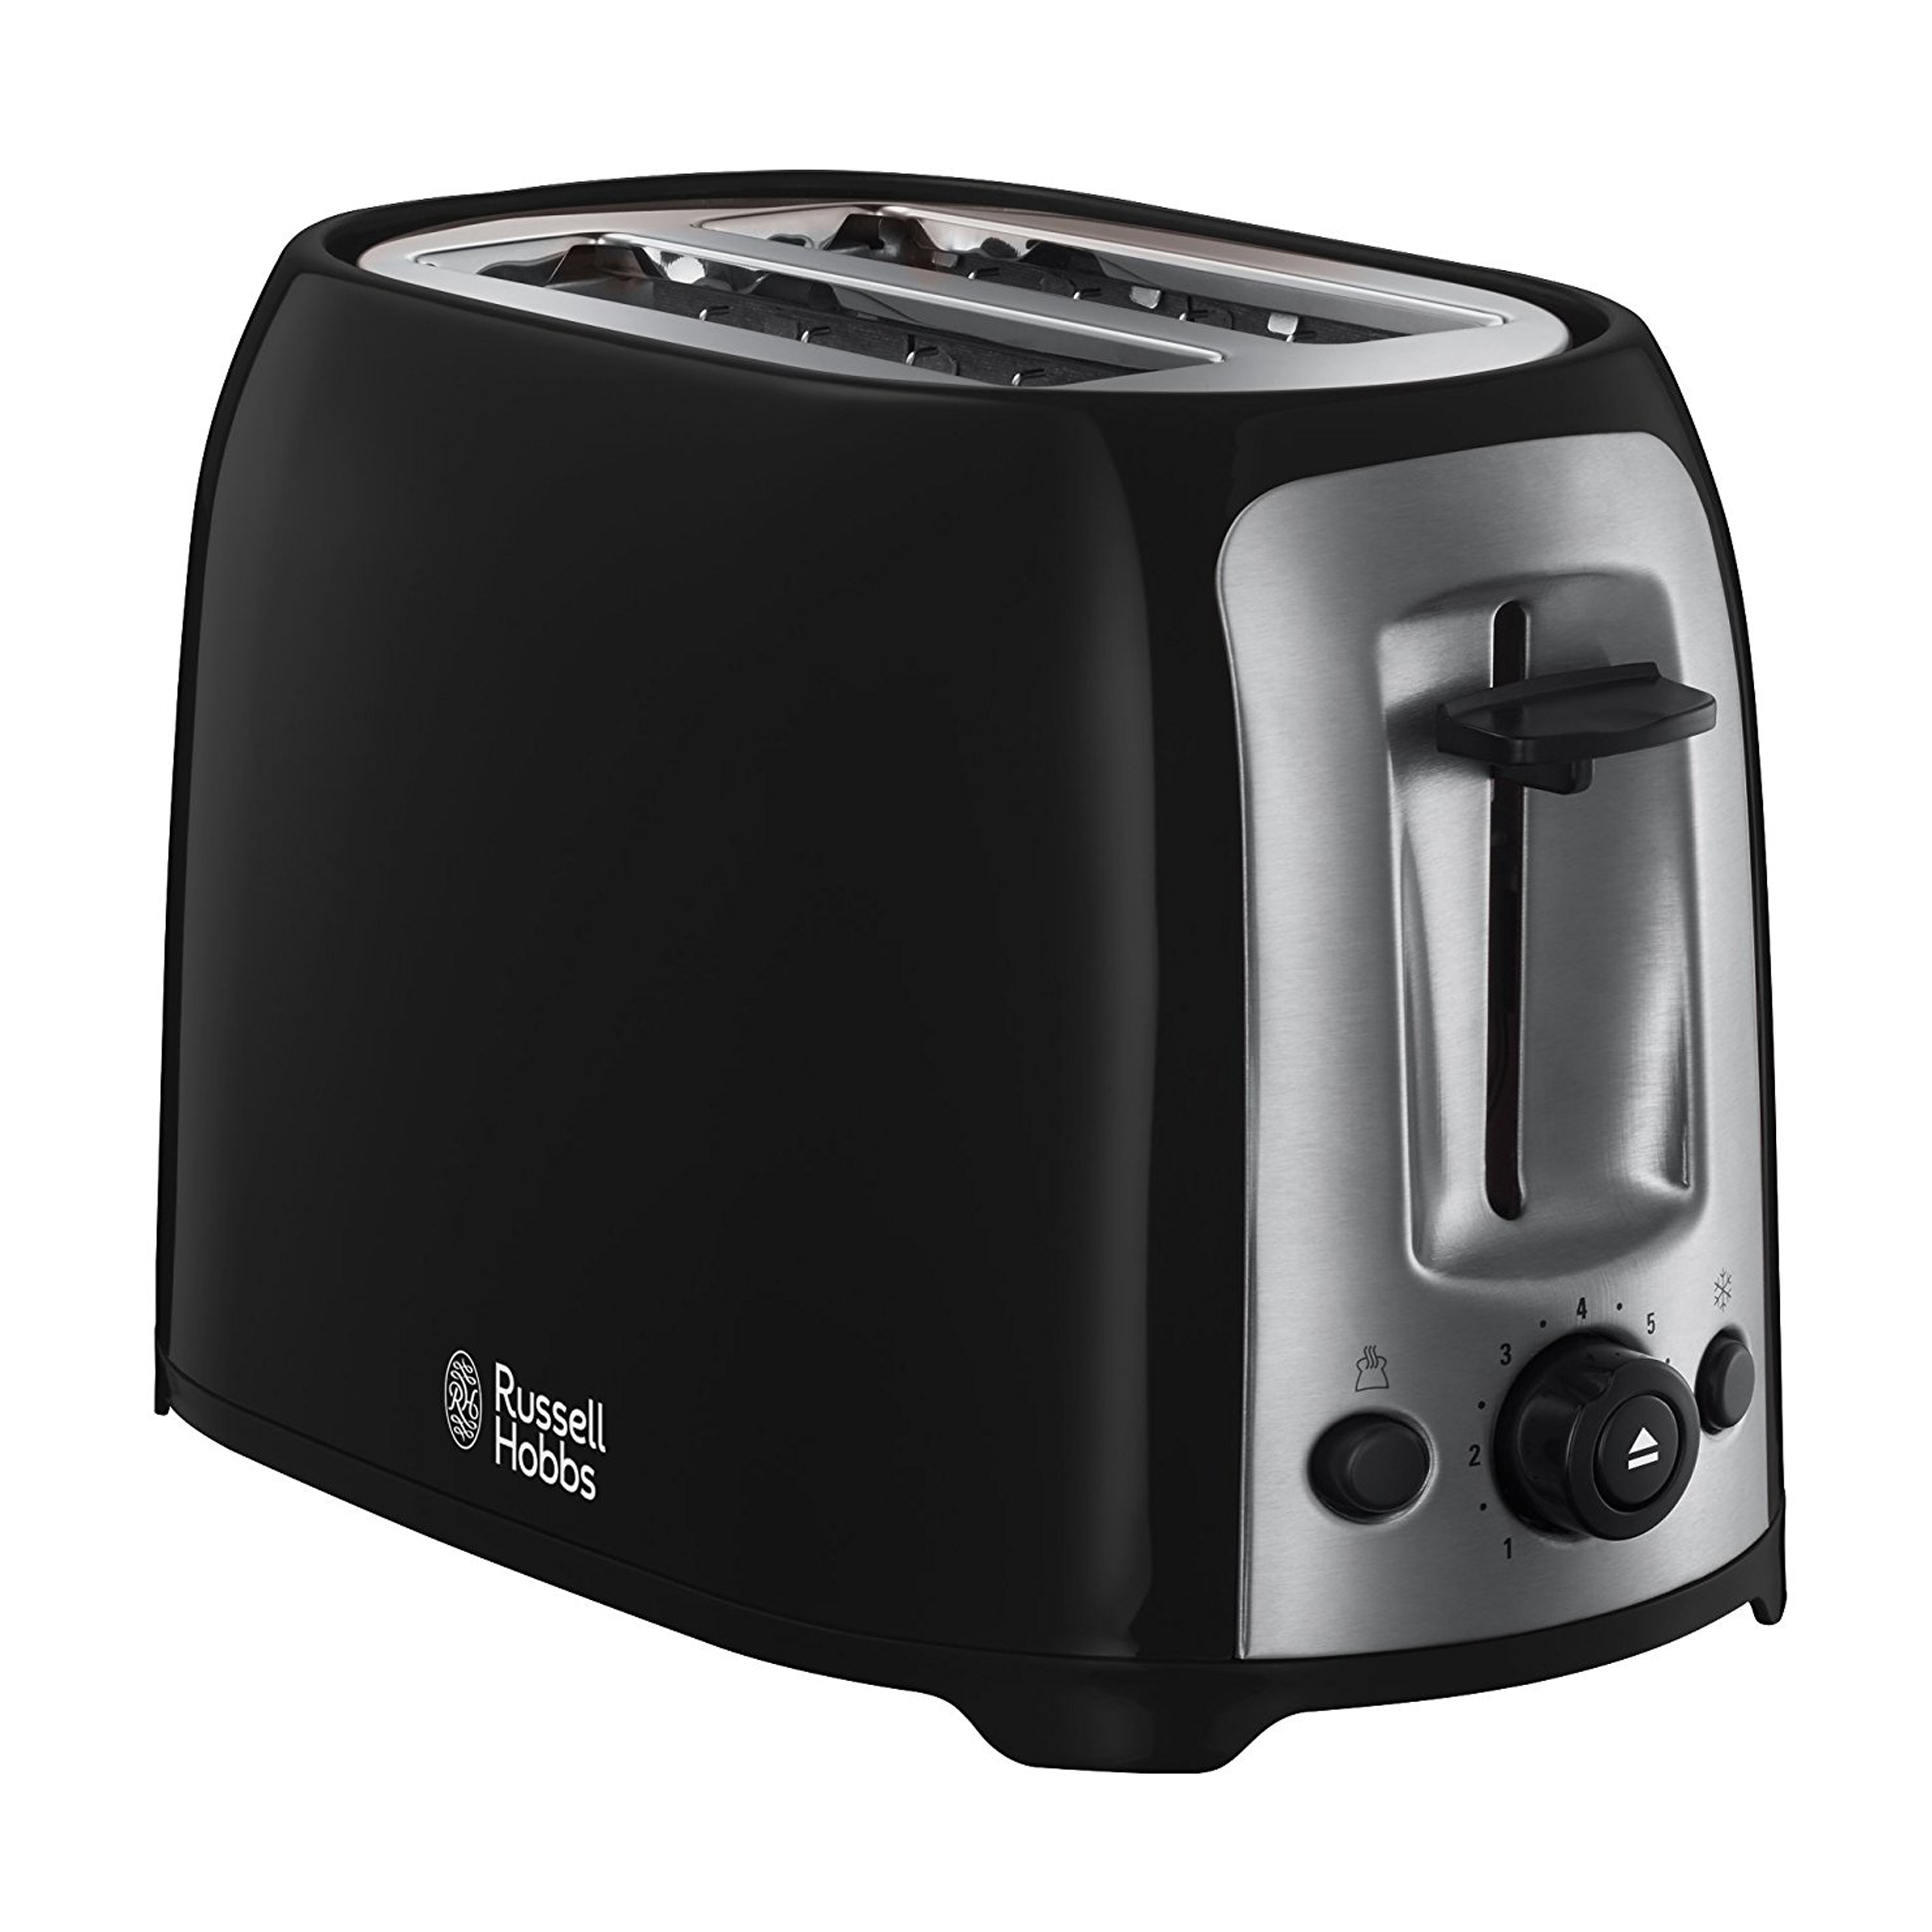 russell hobbs 23862 darwin 2 slice toaster black silver kettles toasters no1brands4you. Black Bedroom Furniture Sets. Home Design Ideas